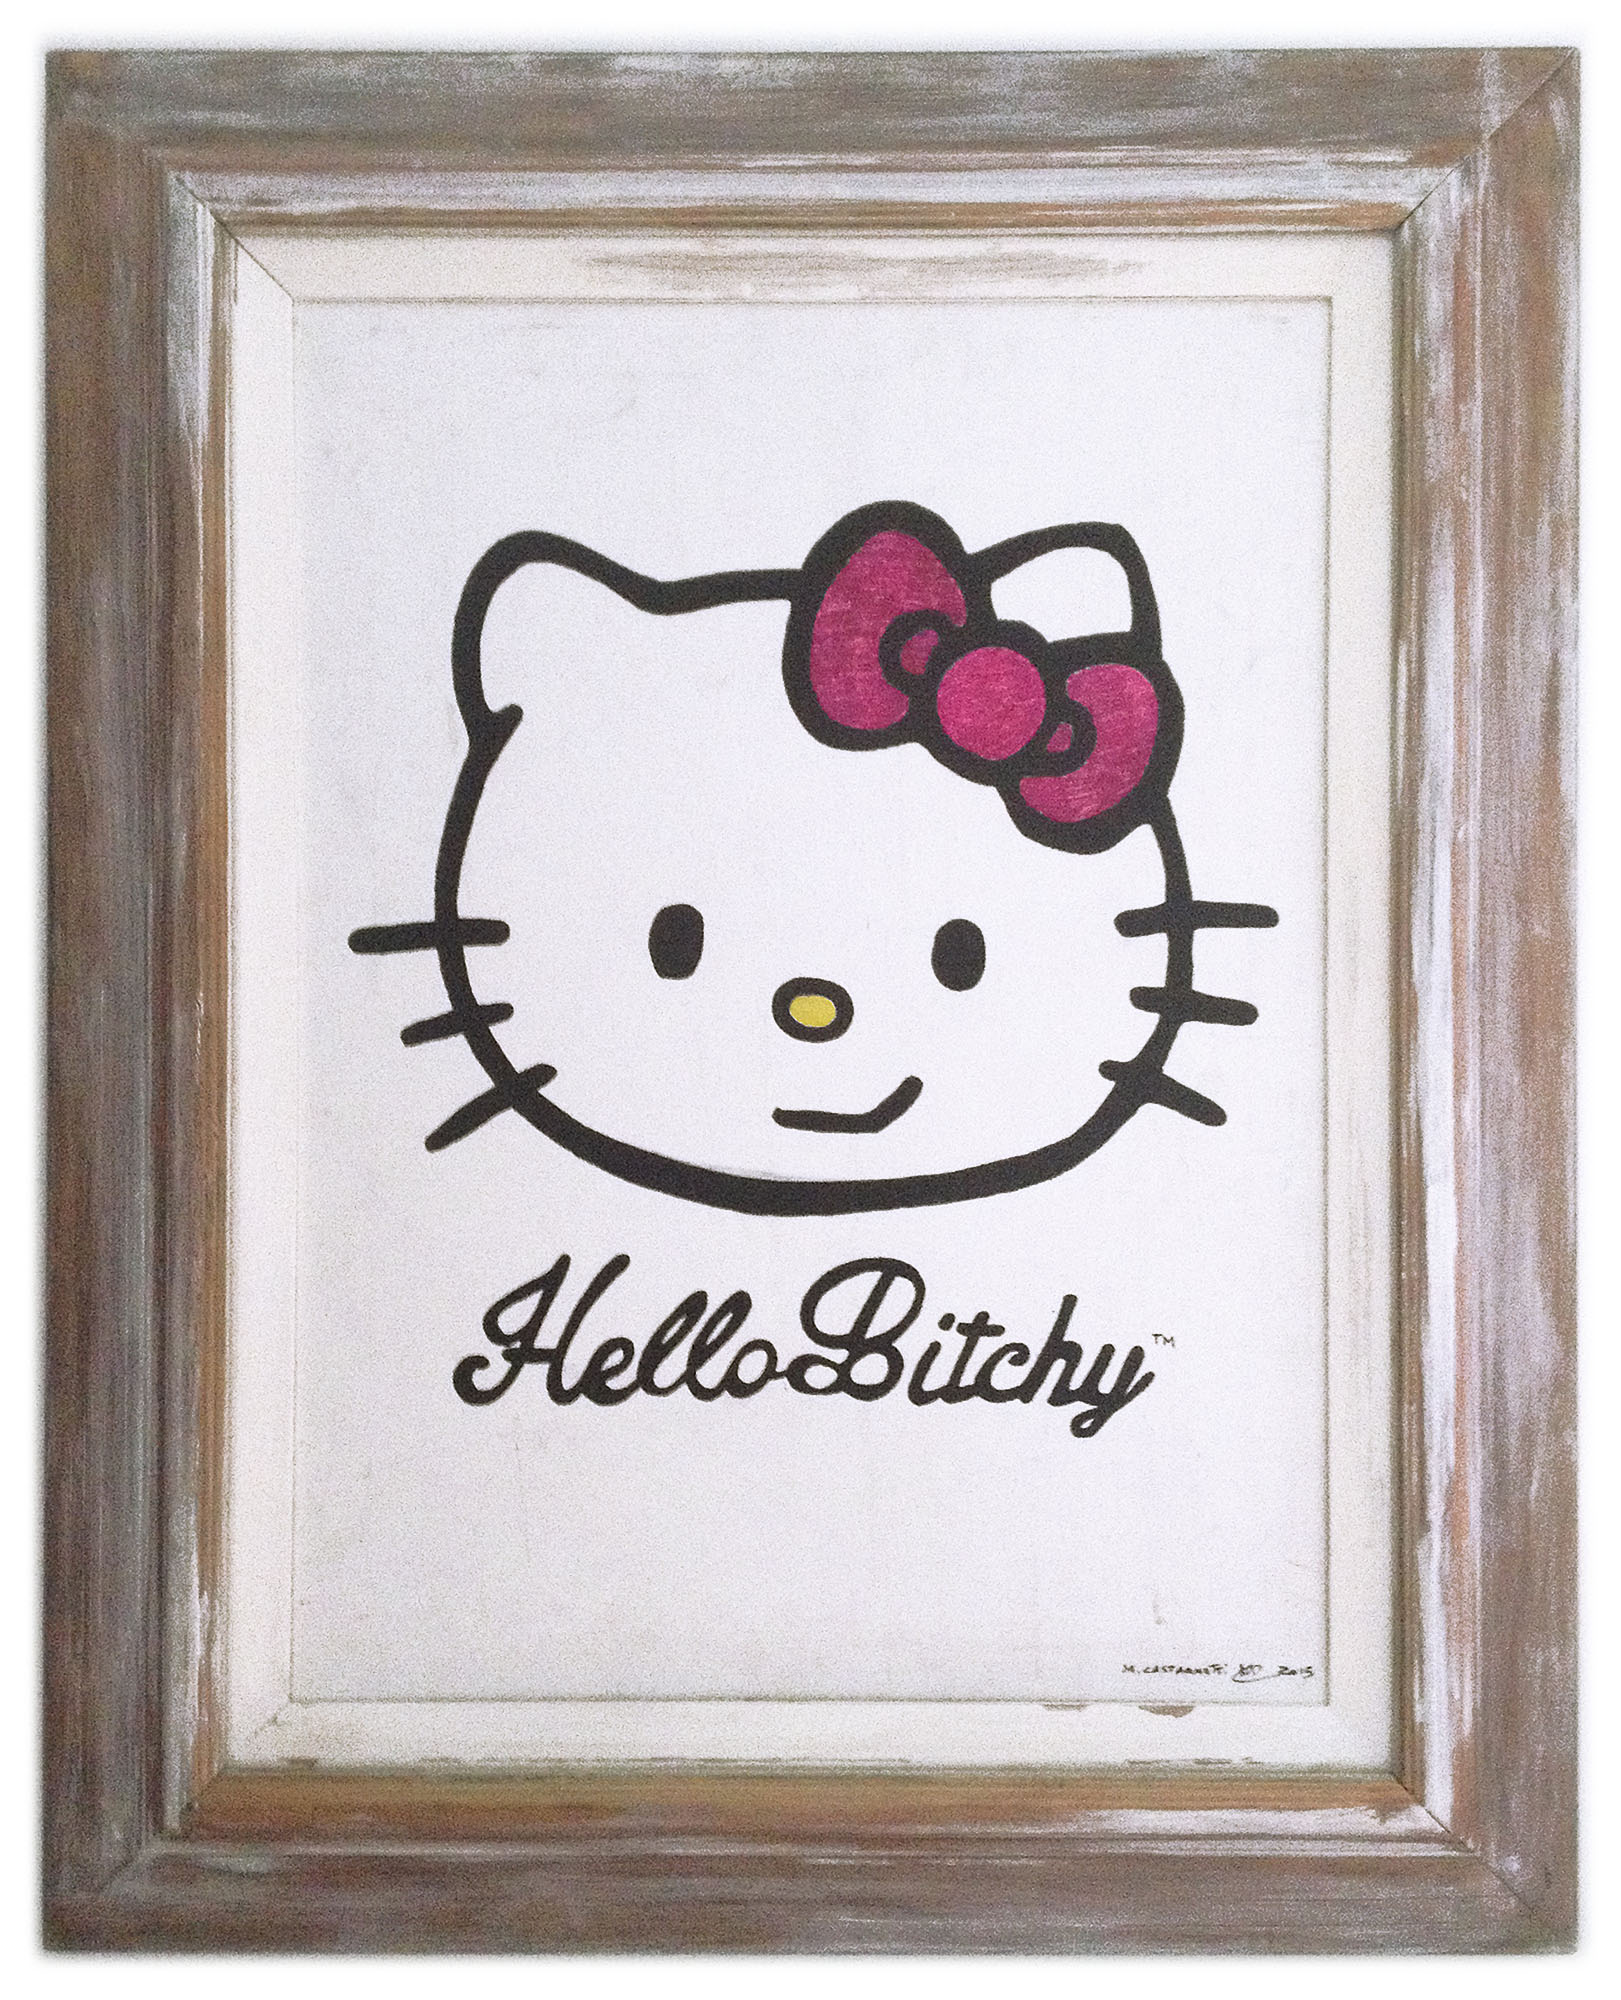 Hello Bitchy Painting framed